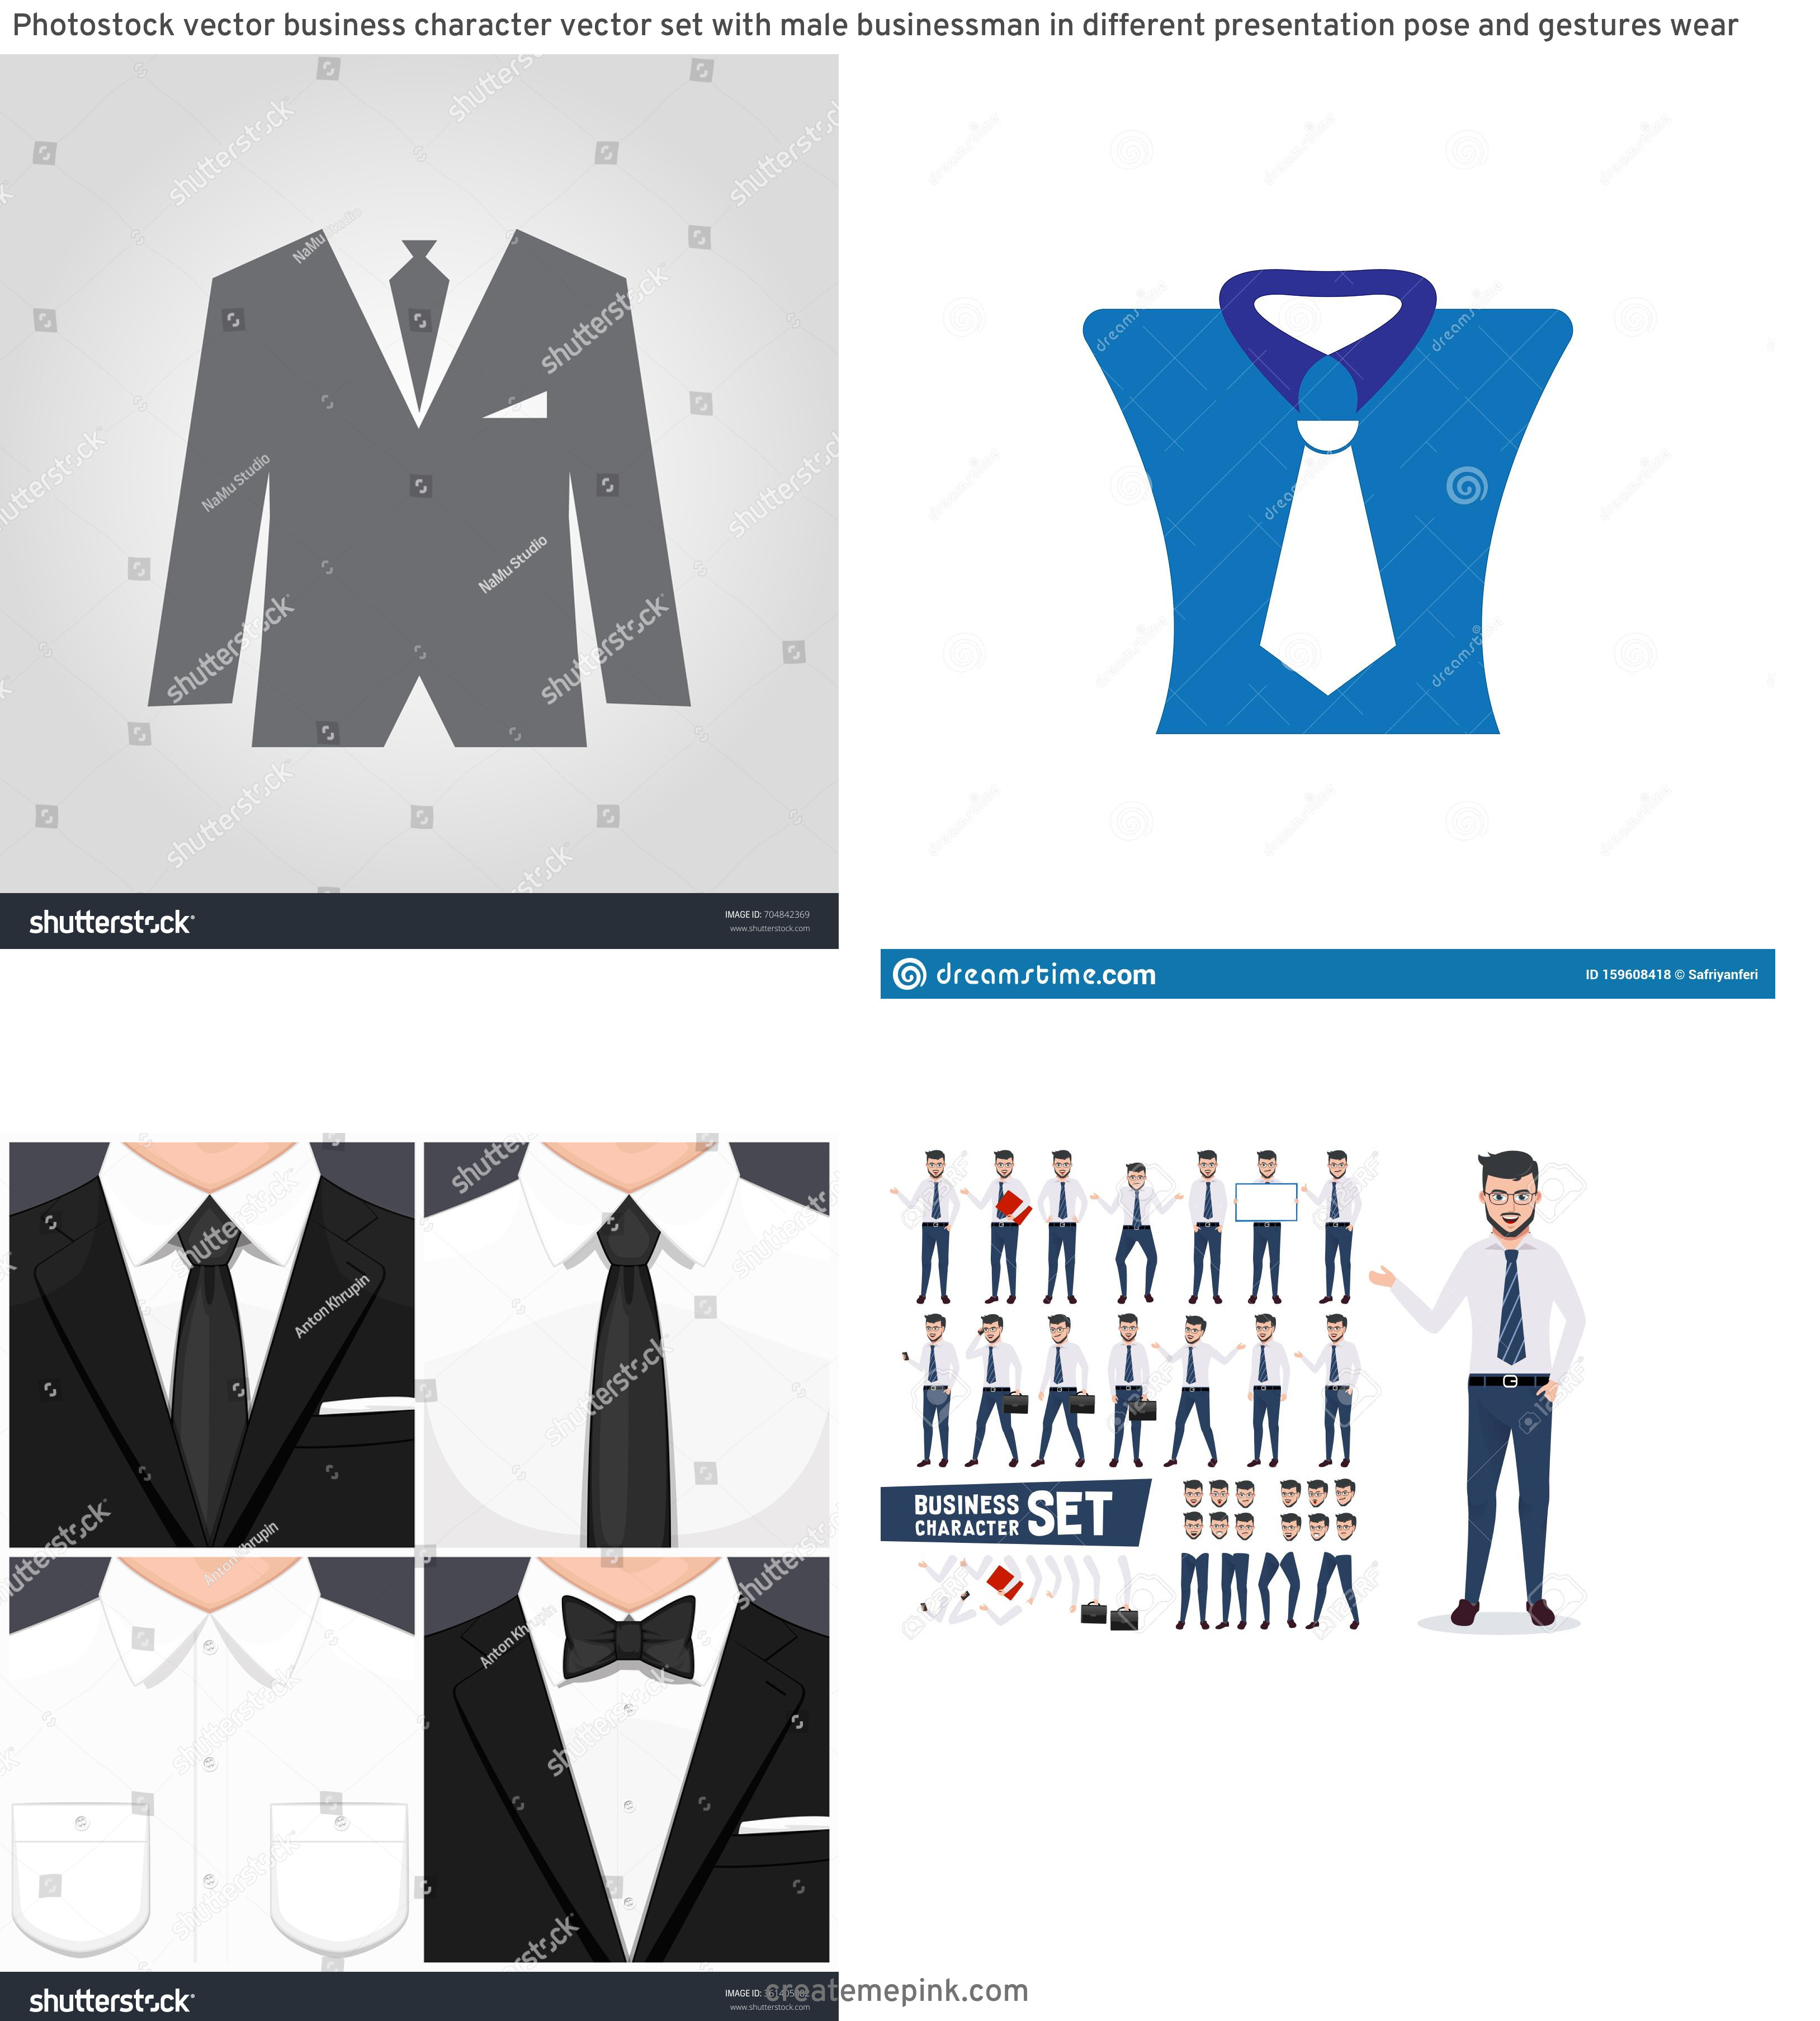 Vector Business Attire: Photostock Vector Business Character Vector Set With Male Businessman In Different Presentation Pose And Gestures Wear